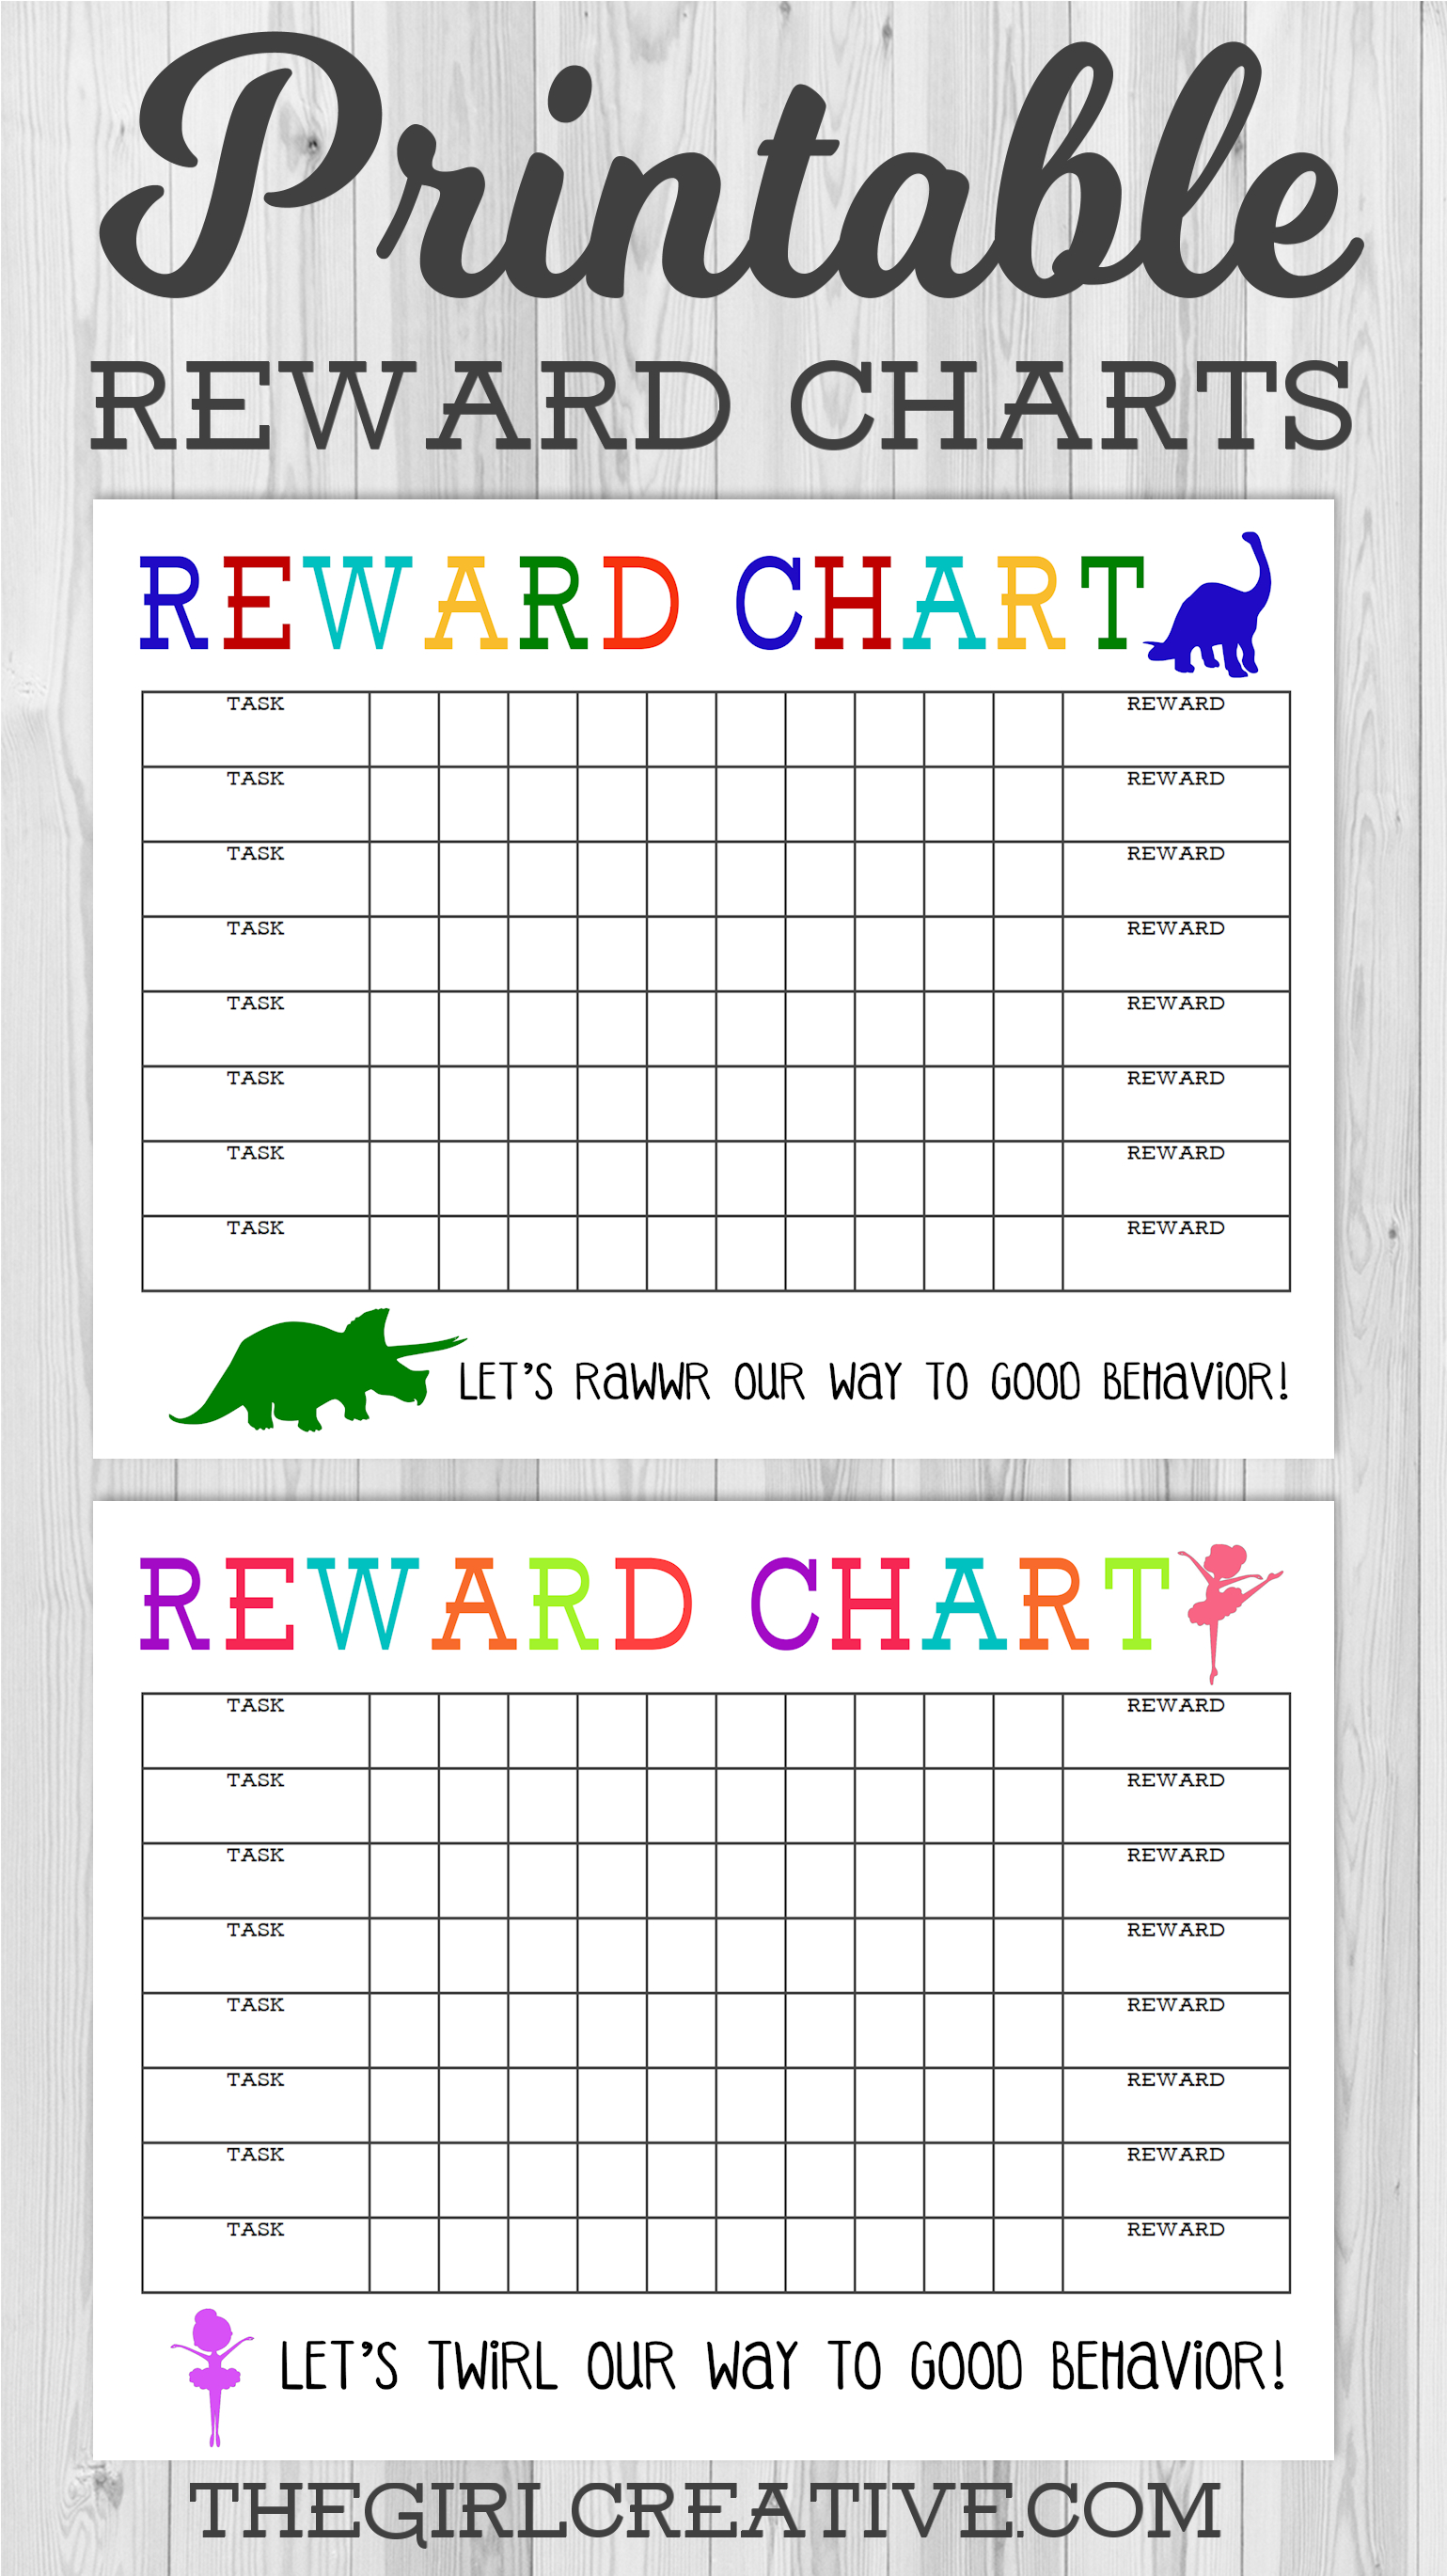 Printable Reward Chart | Share Today's Craft And Diy Ideas | Reward - Free Printable Incentive Charts For Students